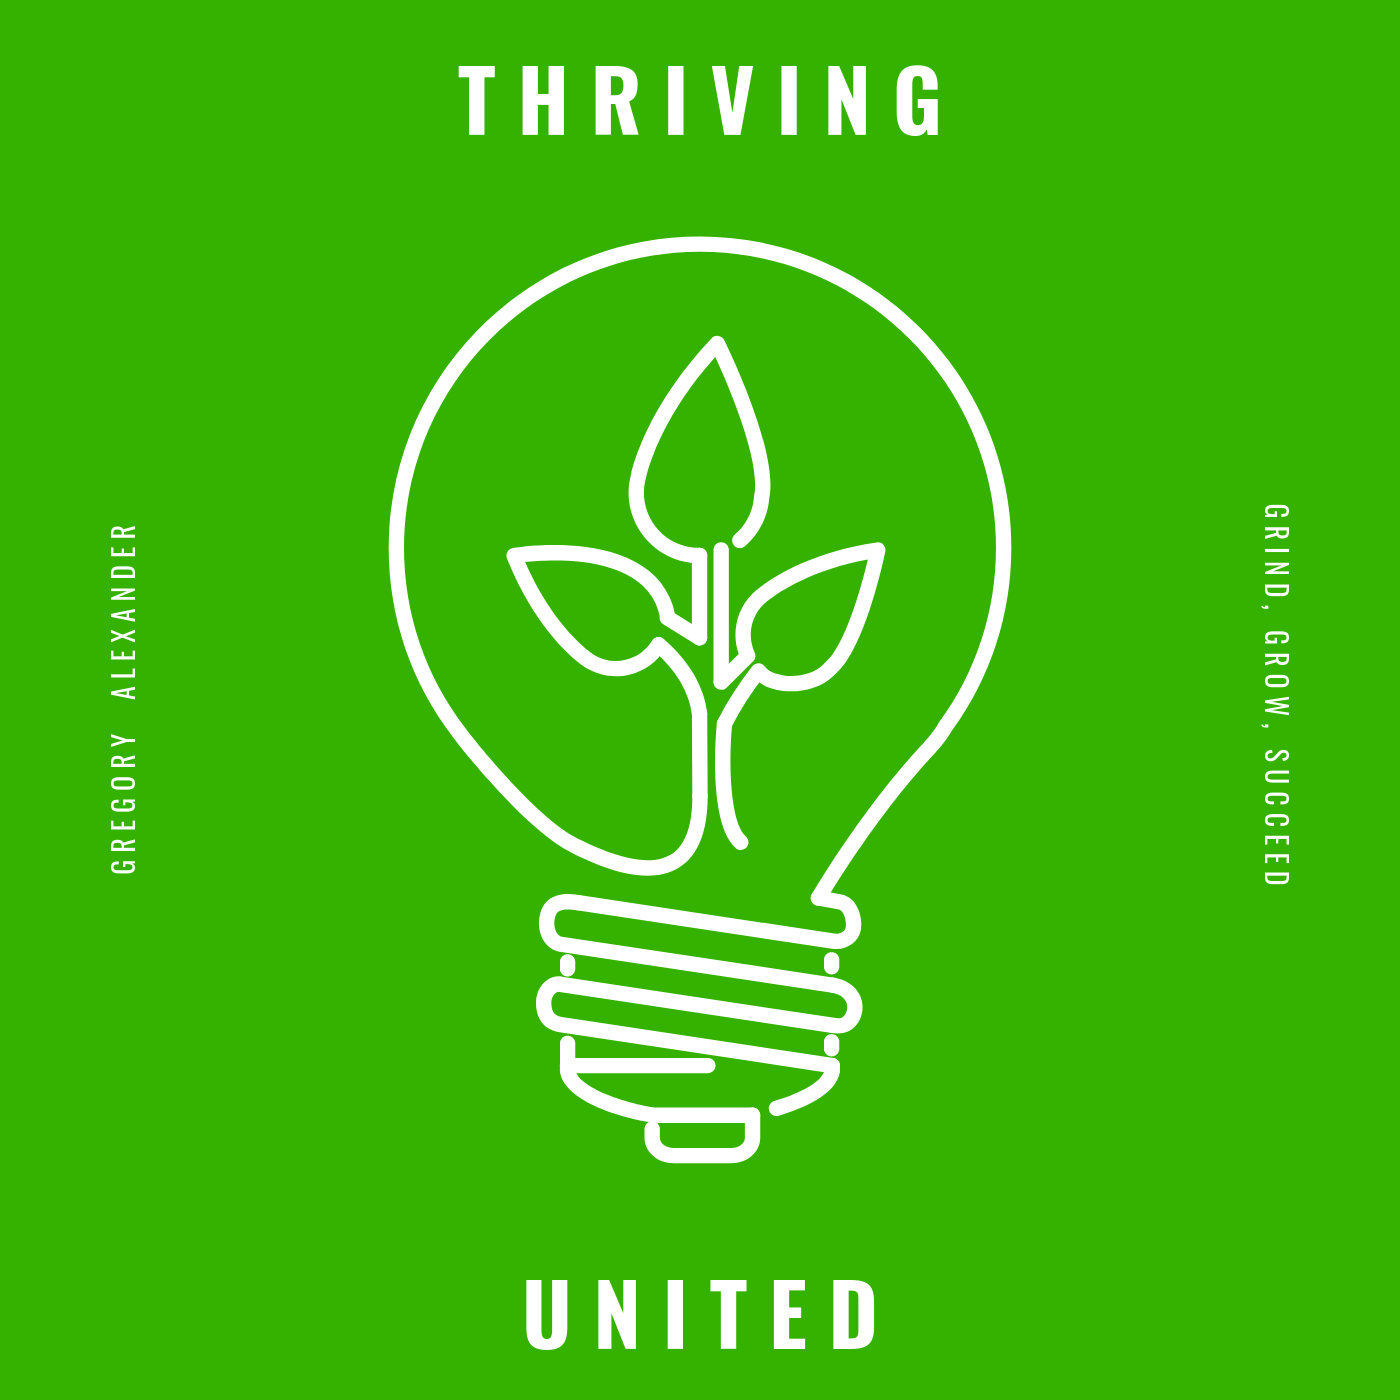 How to Start a Podcast: Step 3 - Marketing — THRIVING UNITED